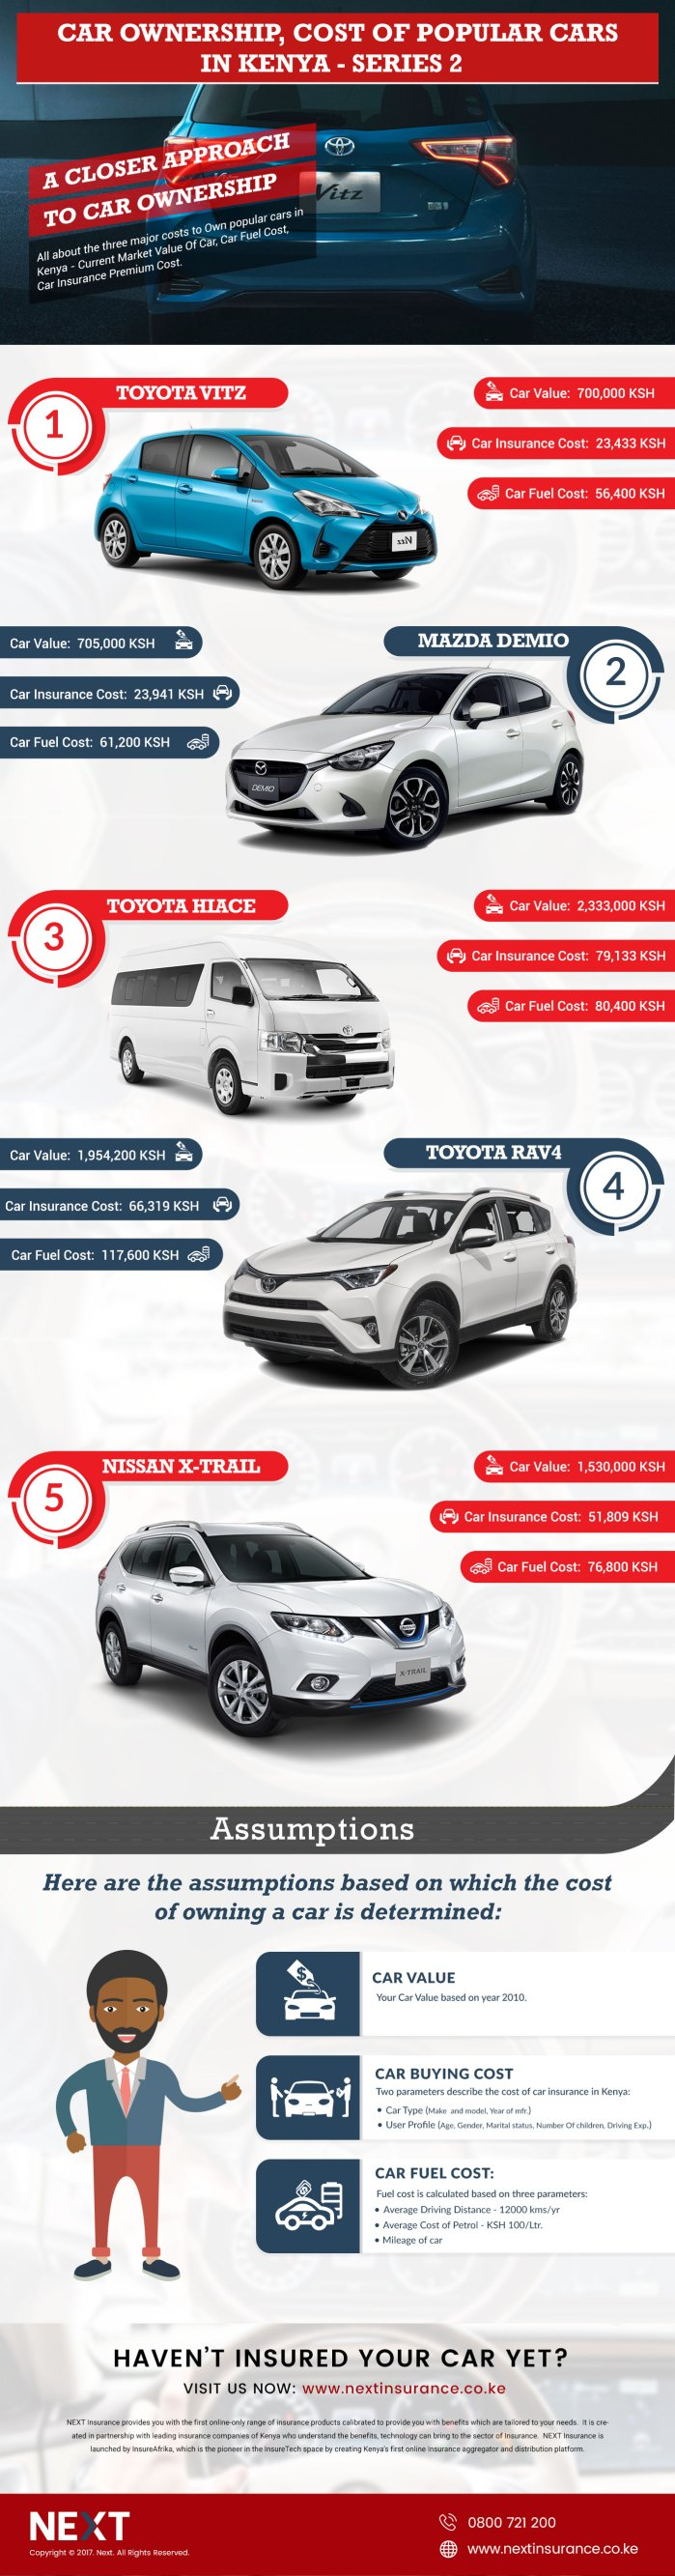 Car Ownership Cost For Popular Cars In Kenya – Series 2